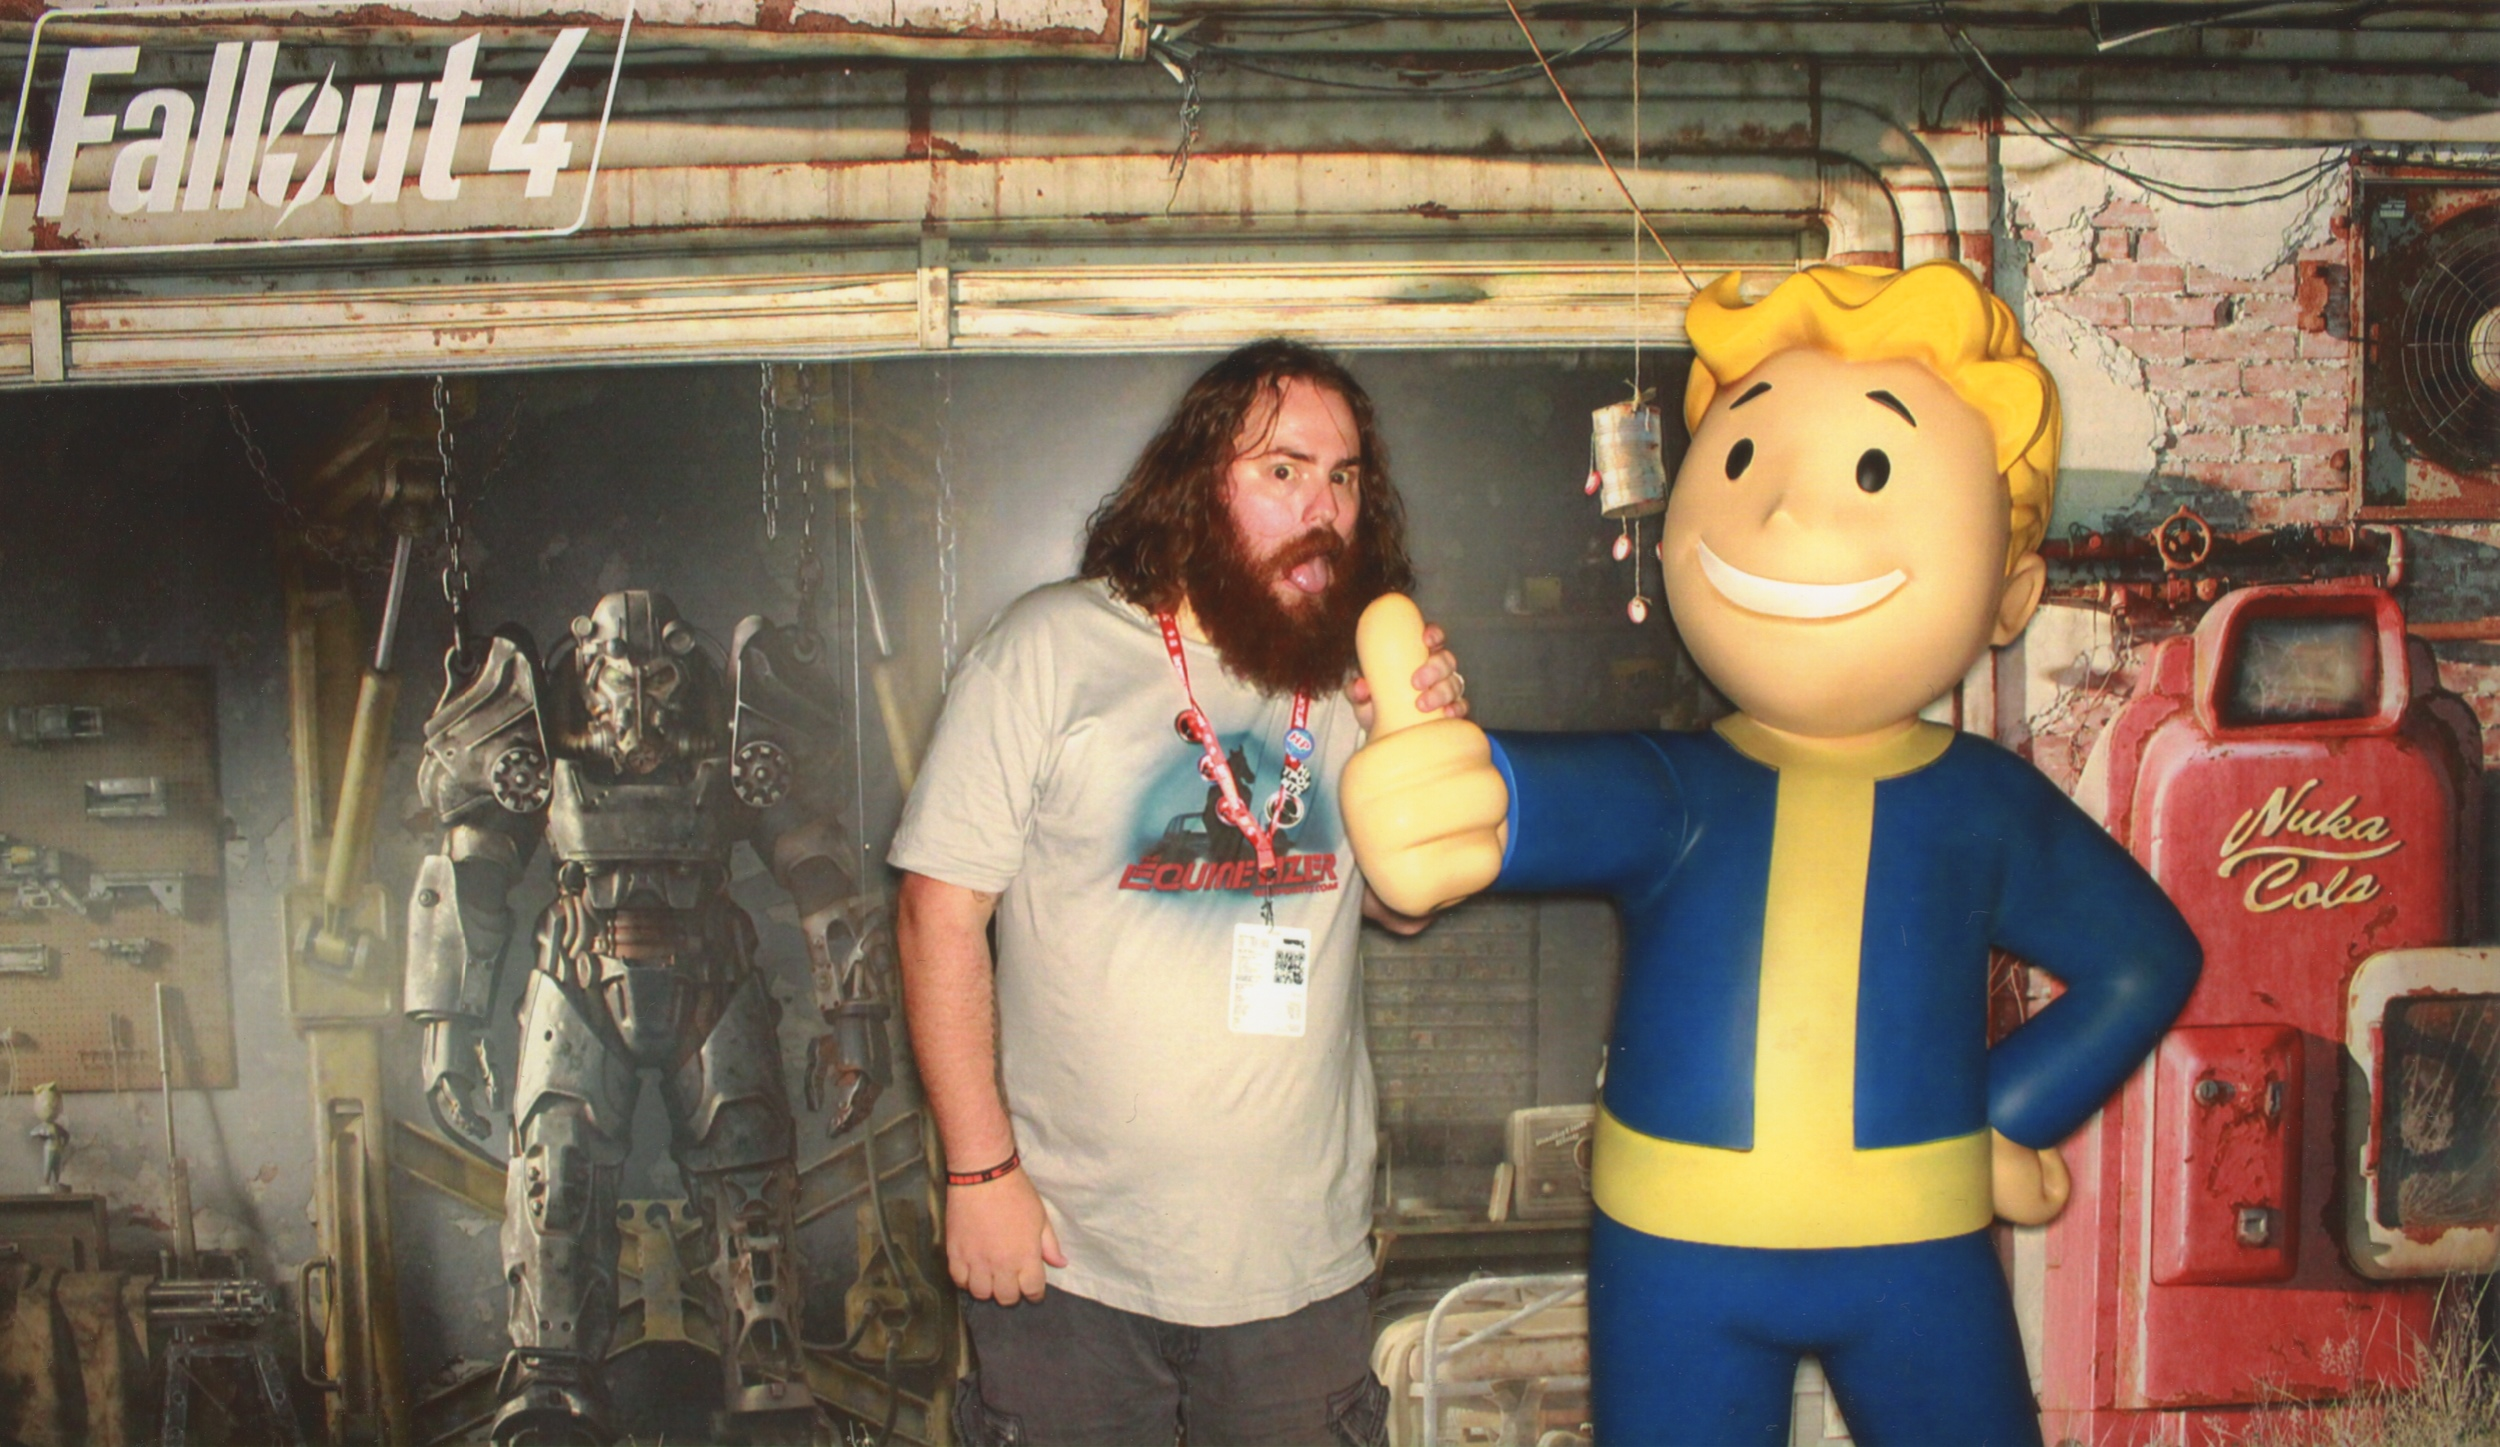 On the other hand I'm not sure what the girl taking the picture told Matt, but I'm starting to think he's excited about Fallout 4.